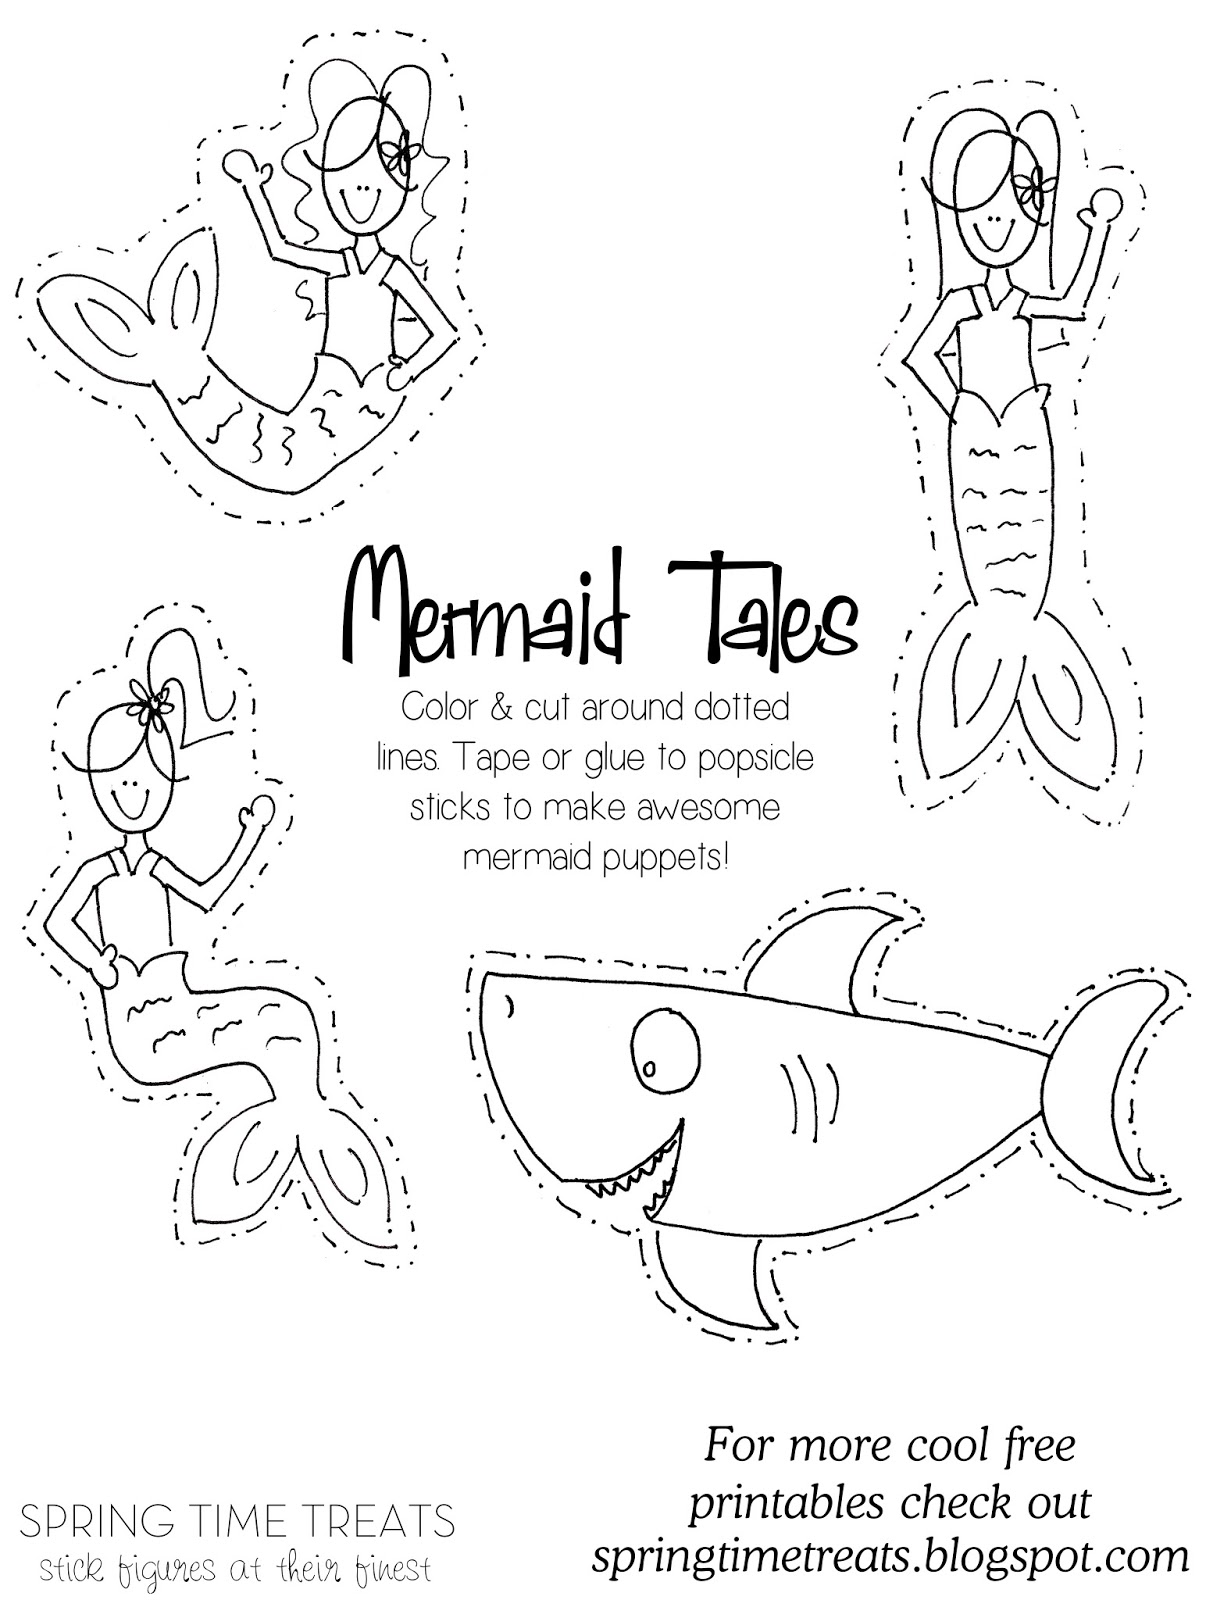 mermaid paper doll coloring pages sealilly pirate mermaid puppet wwwpheemcfaddellcom coloring pages doll paper mermaid